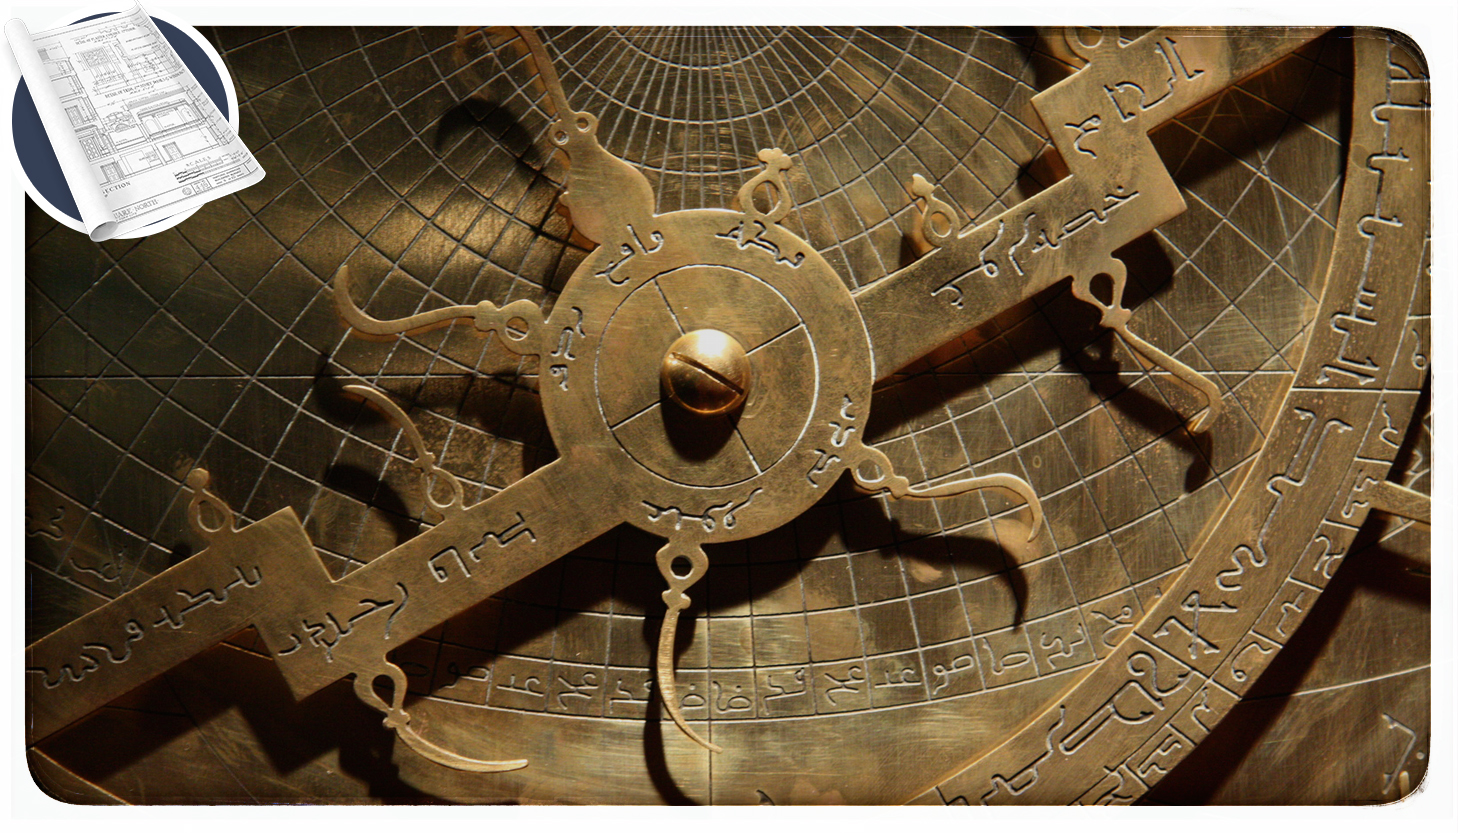 close up of an astrolabe